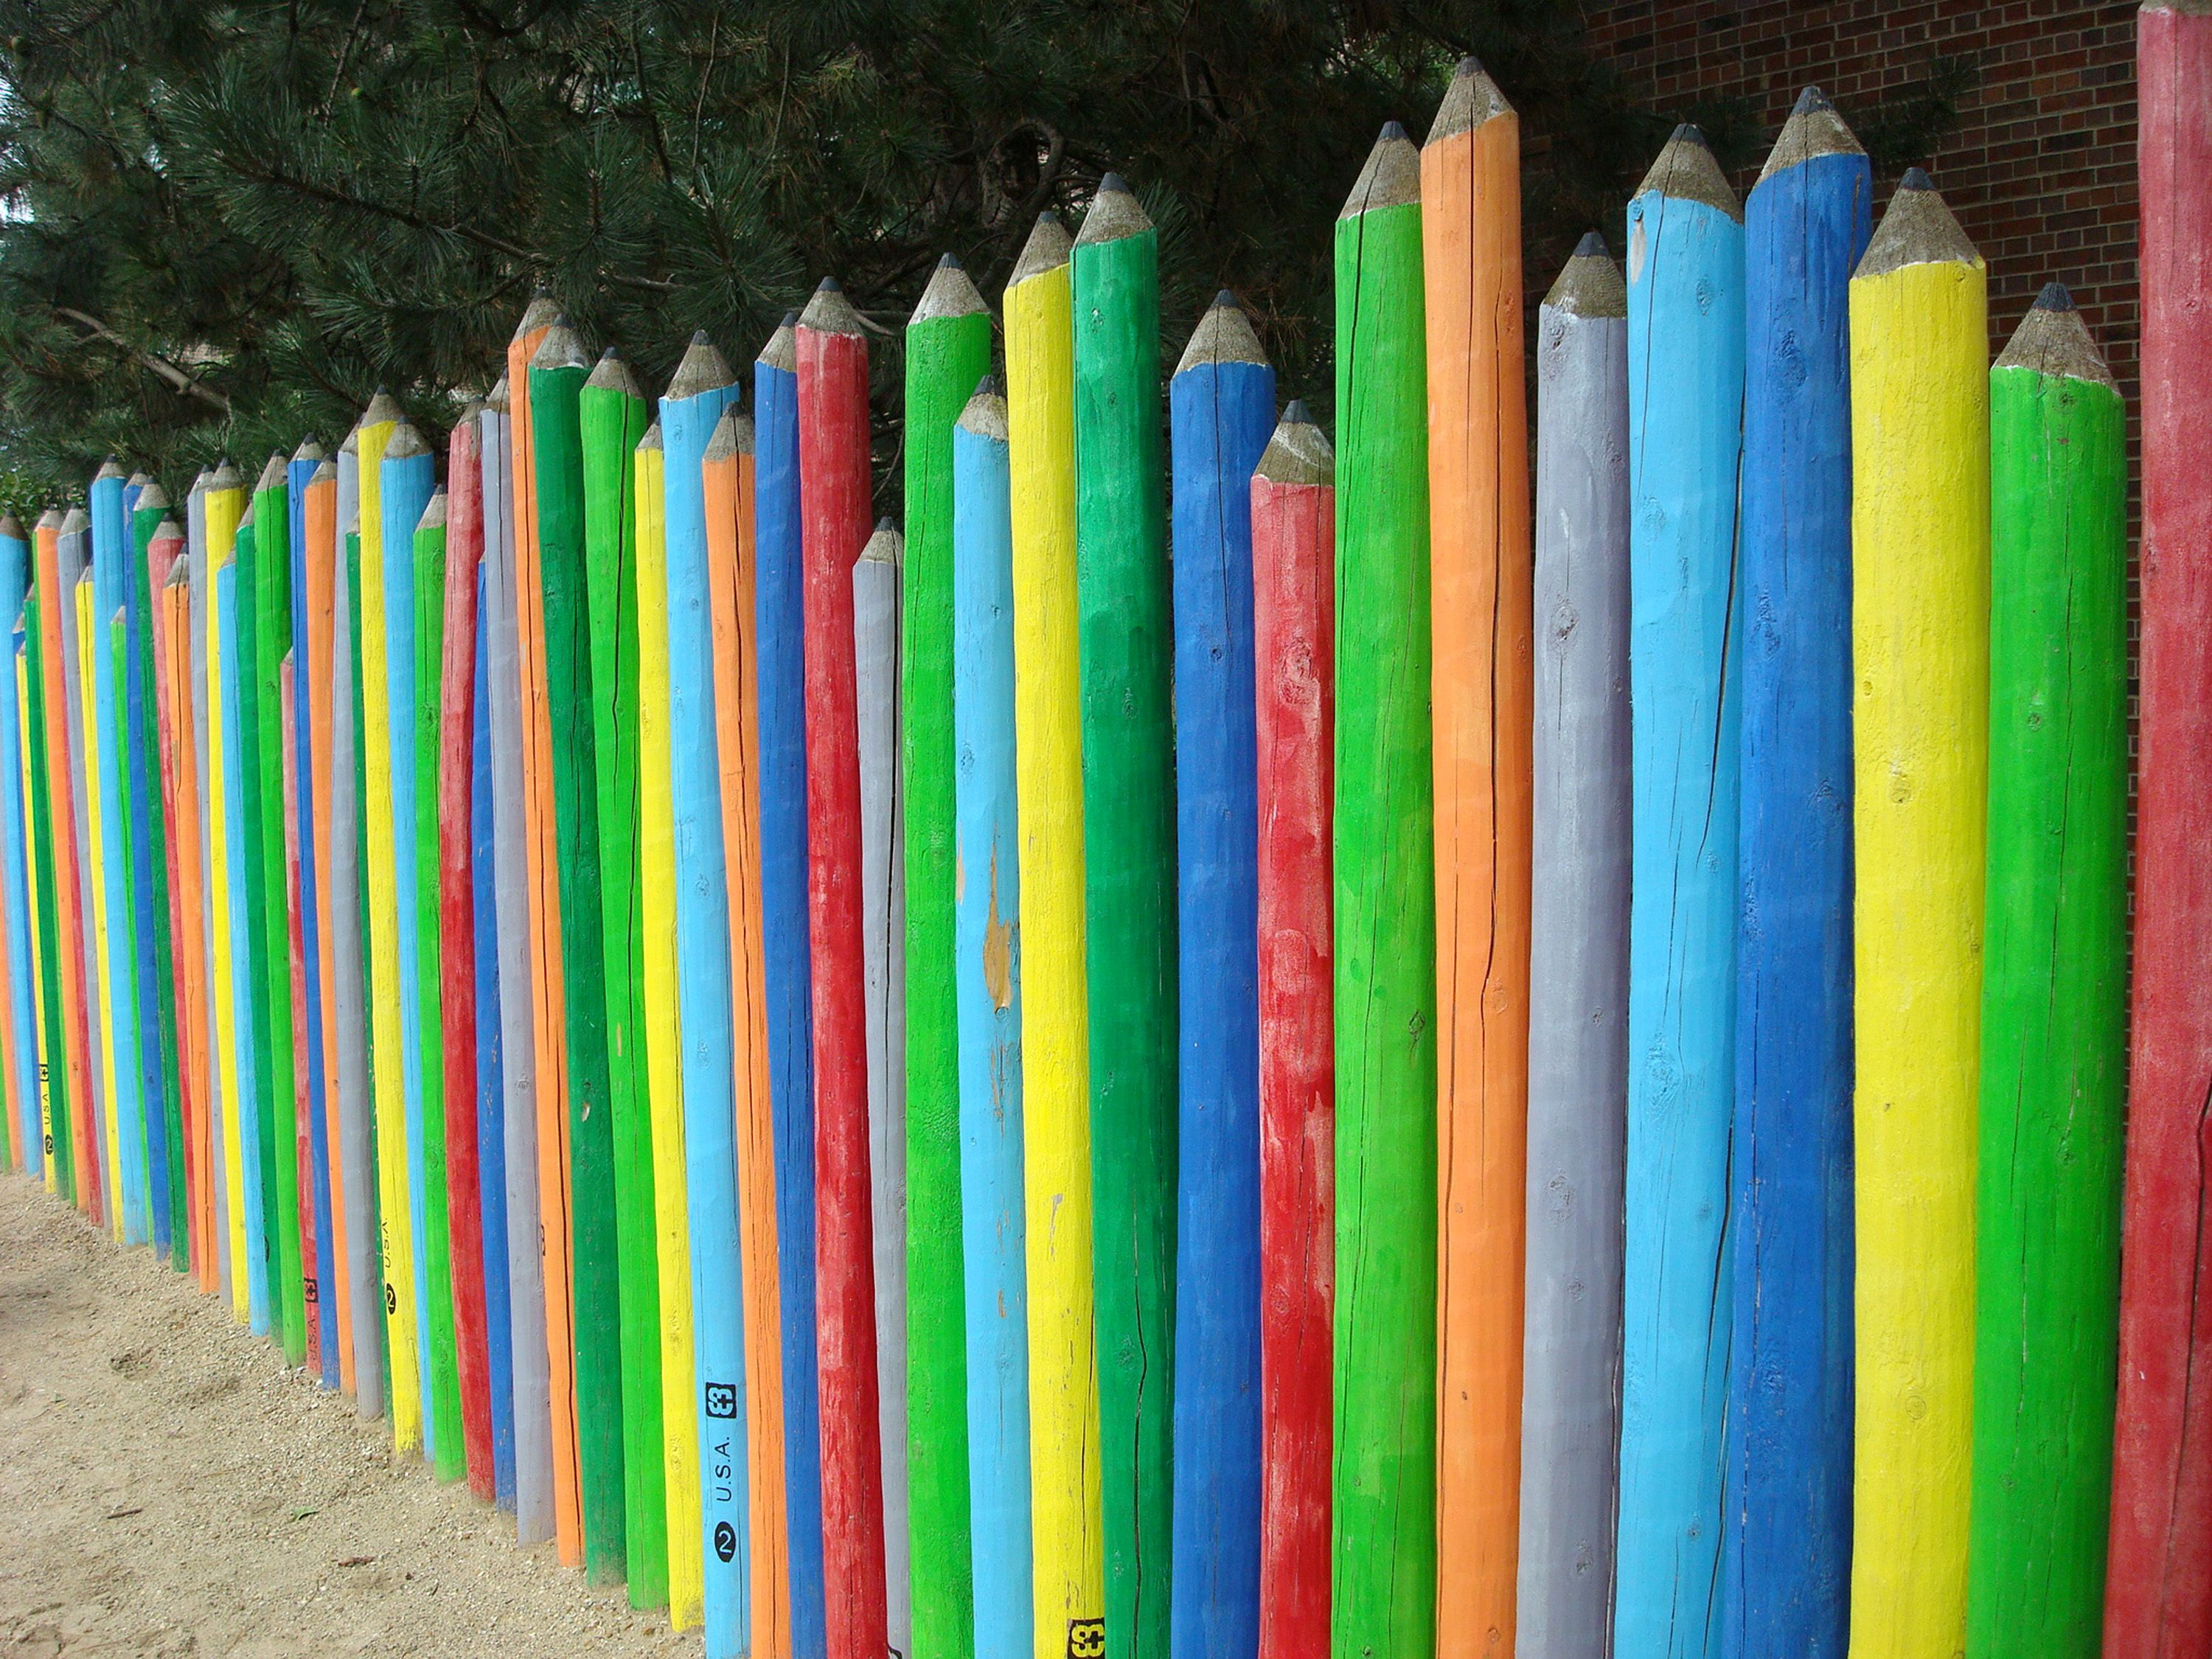 Pencil fence pre school child playlot urban garden